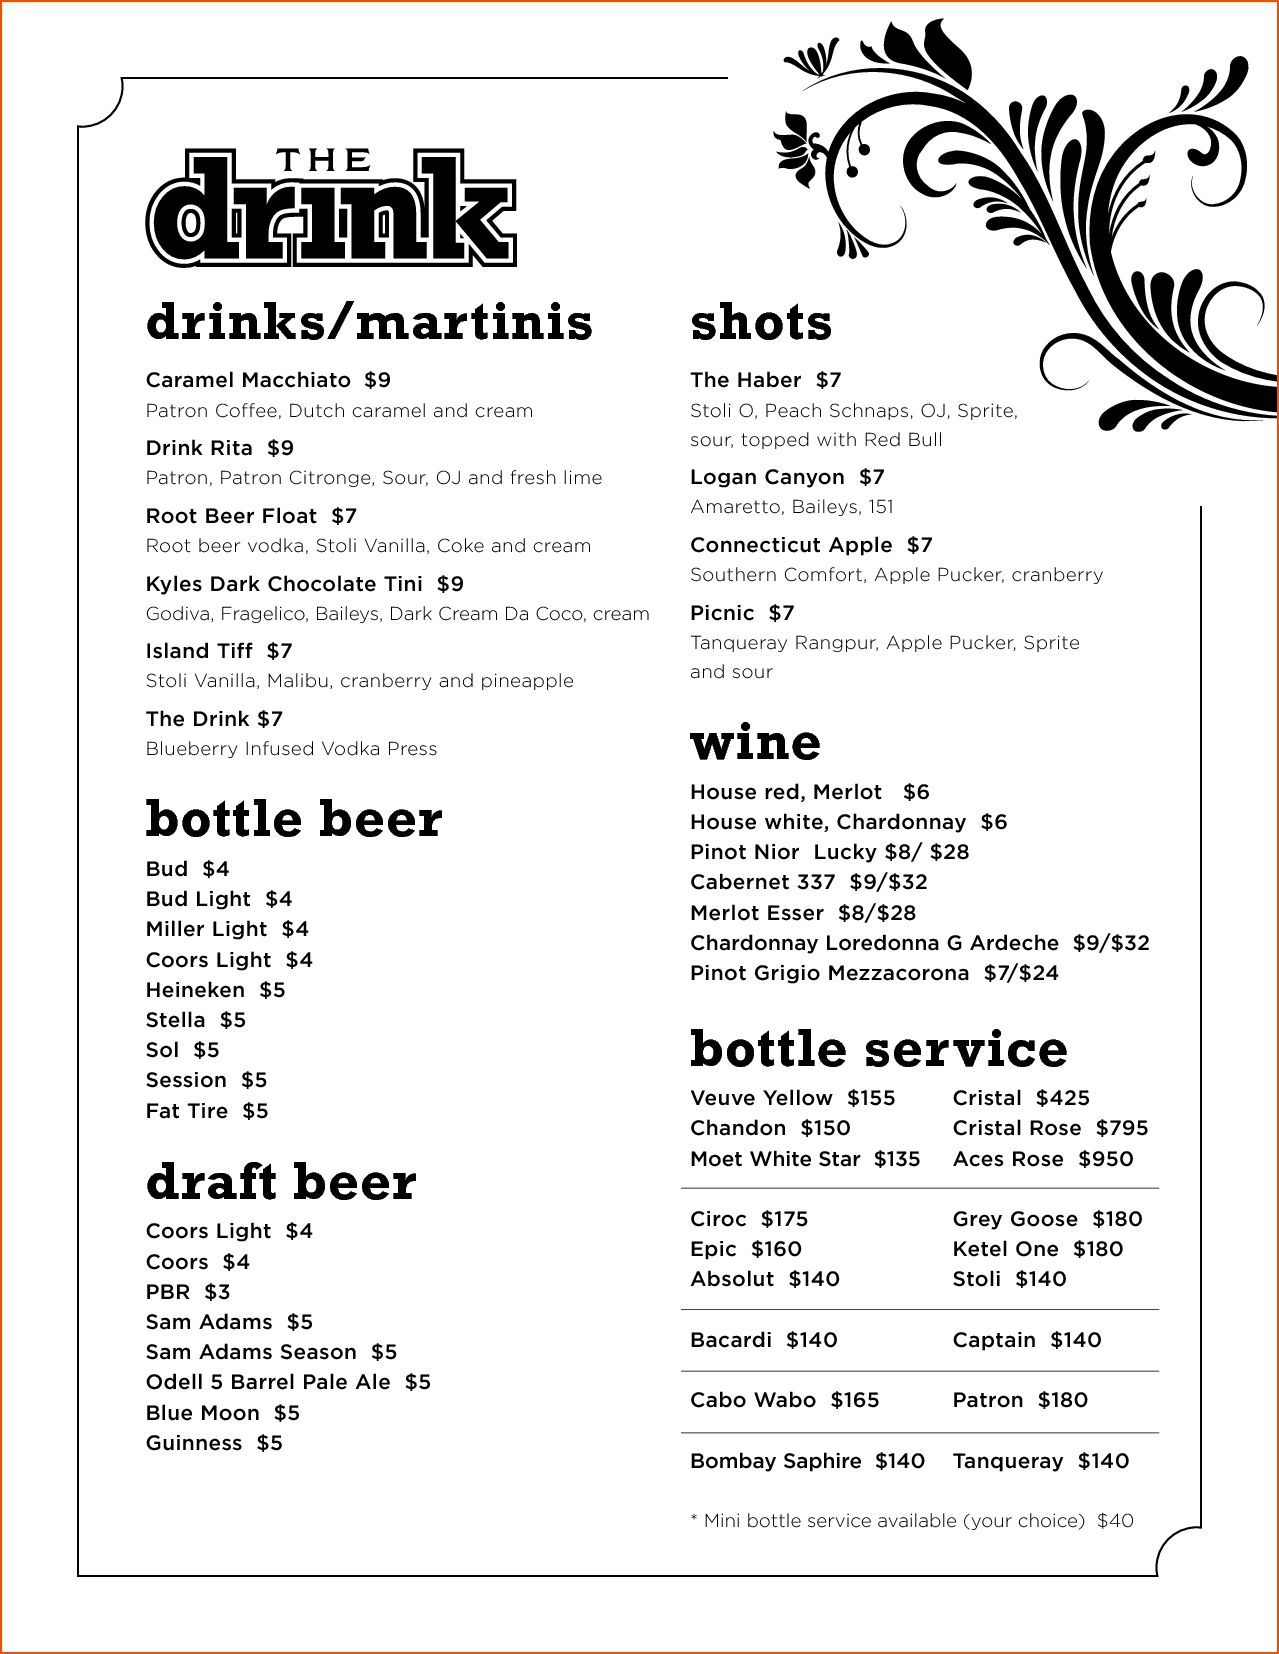 008 Template Ideas Drink Menu Microsoft Word Impressive